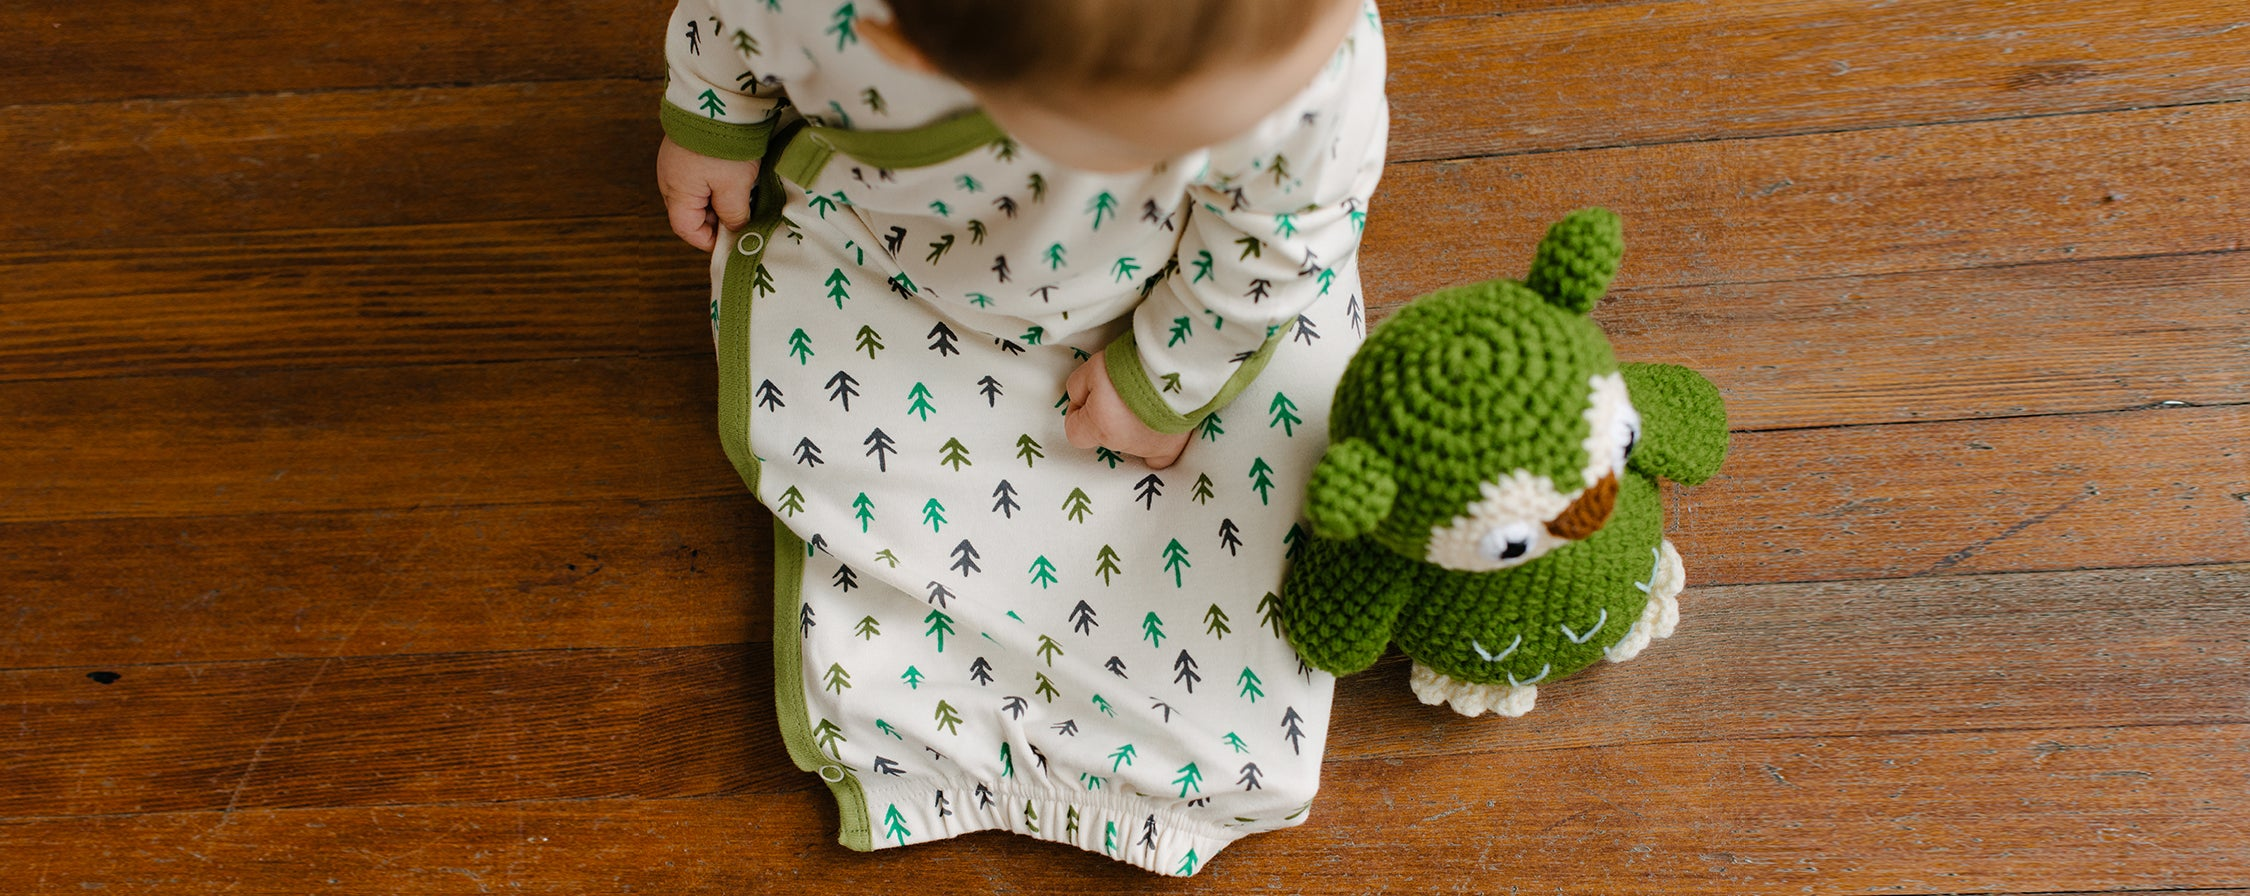 Parade Organics | Organic baby & kids clothes, modern & playful - Gowns